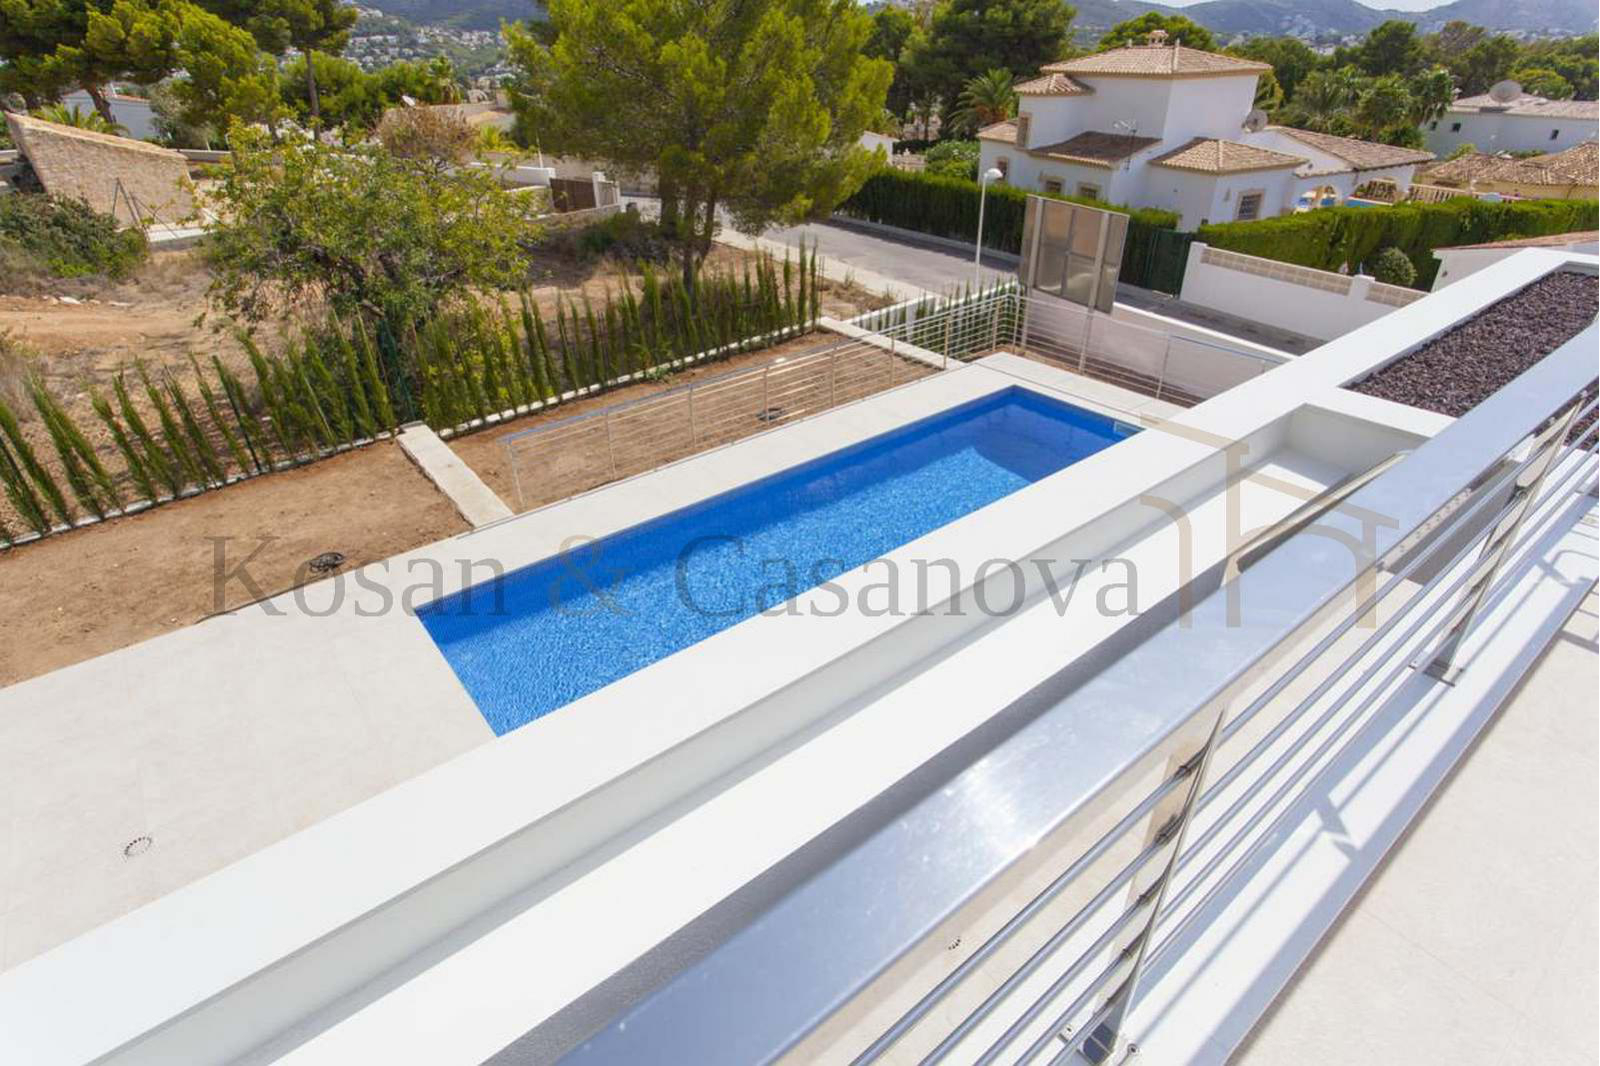 Moraira / Teulada- A contemporary Villa, bright and airy, with openspaces, ideal for modern living pic 6